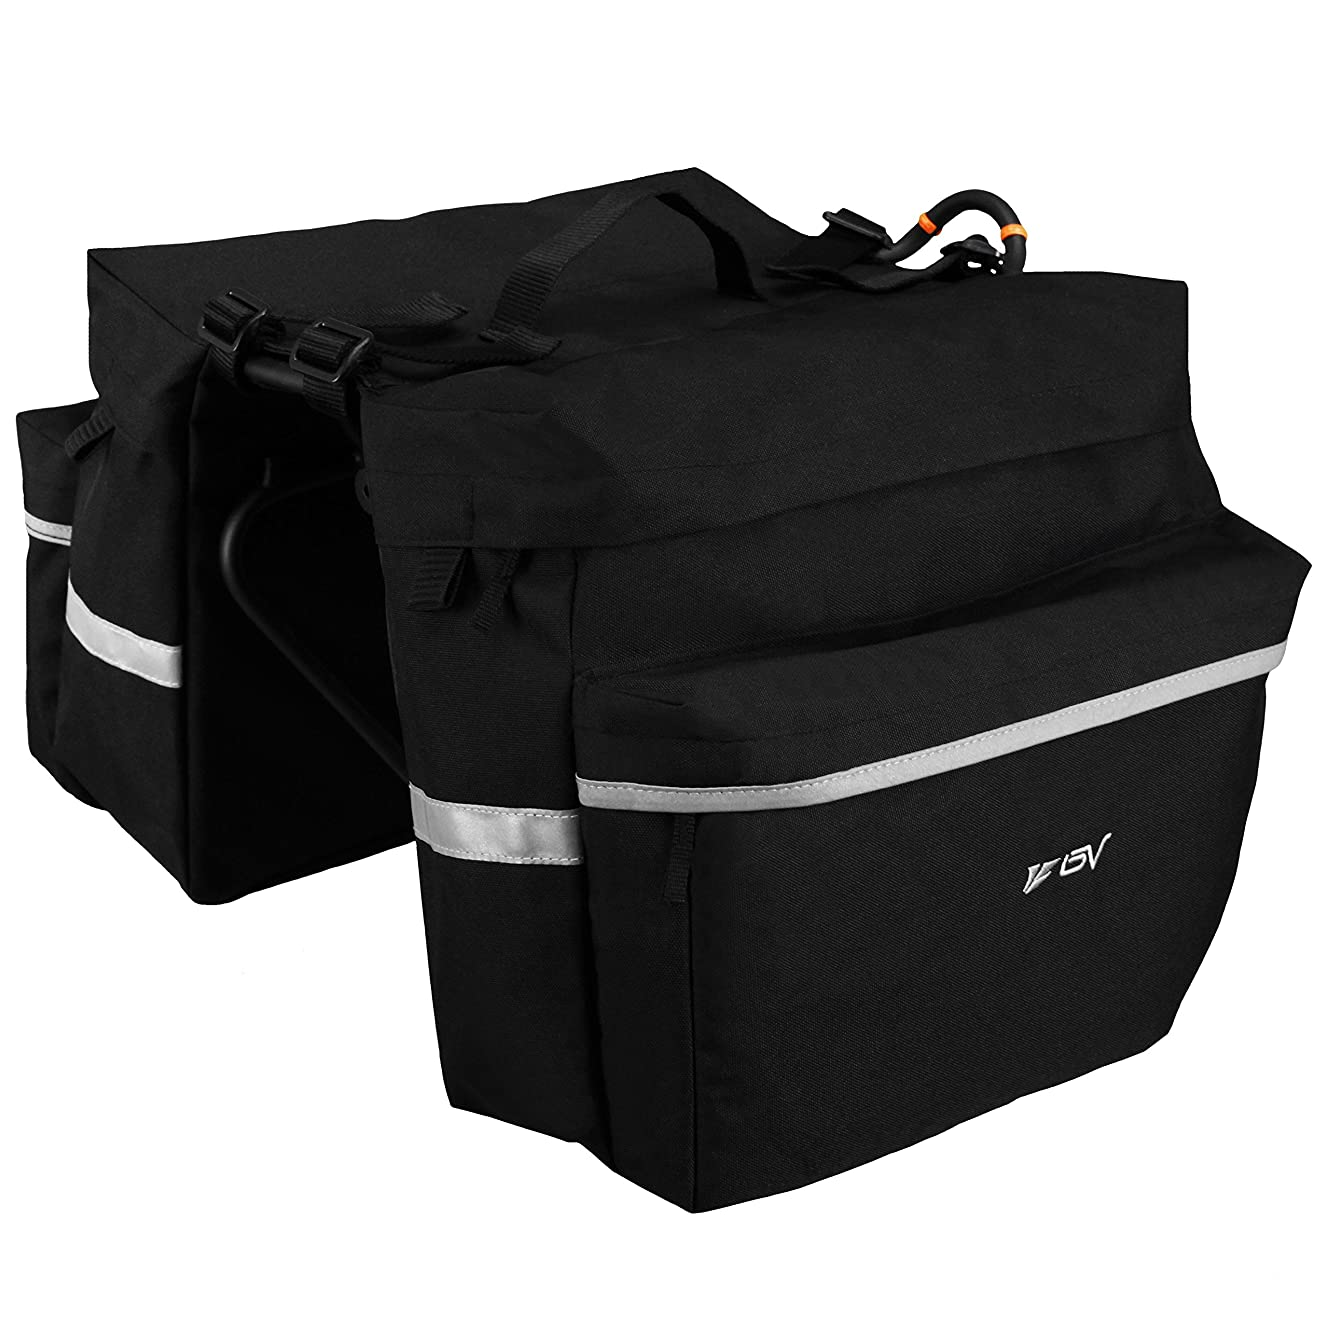 BV Bike Bag Bicycle Panniers with Adjustable Hooks, Carrying Handle, Reflective Trim and Large Pockets